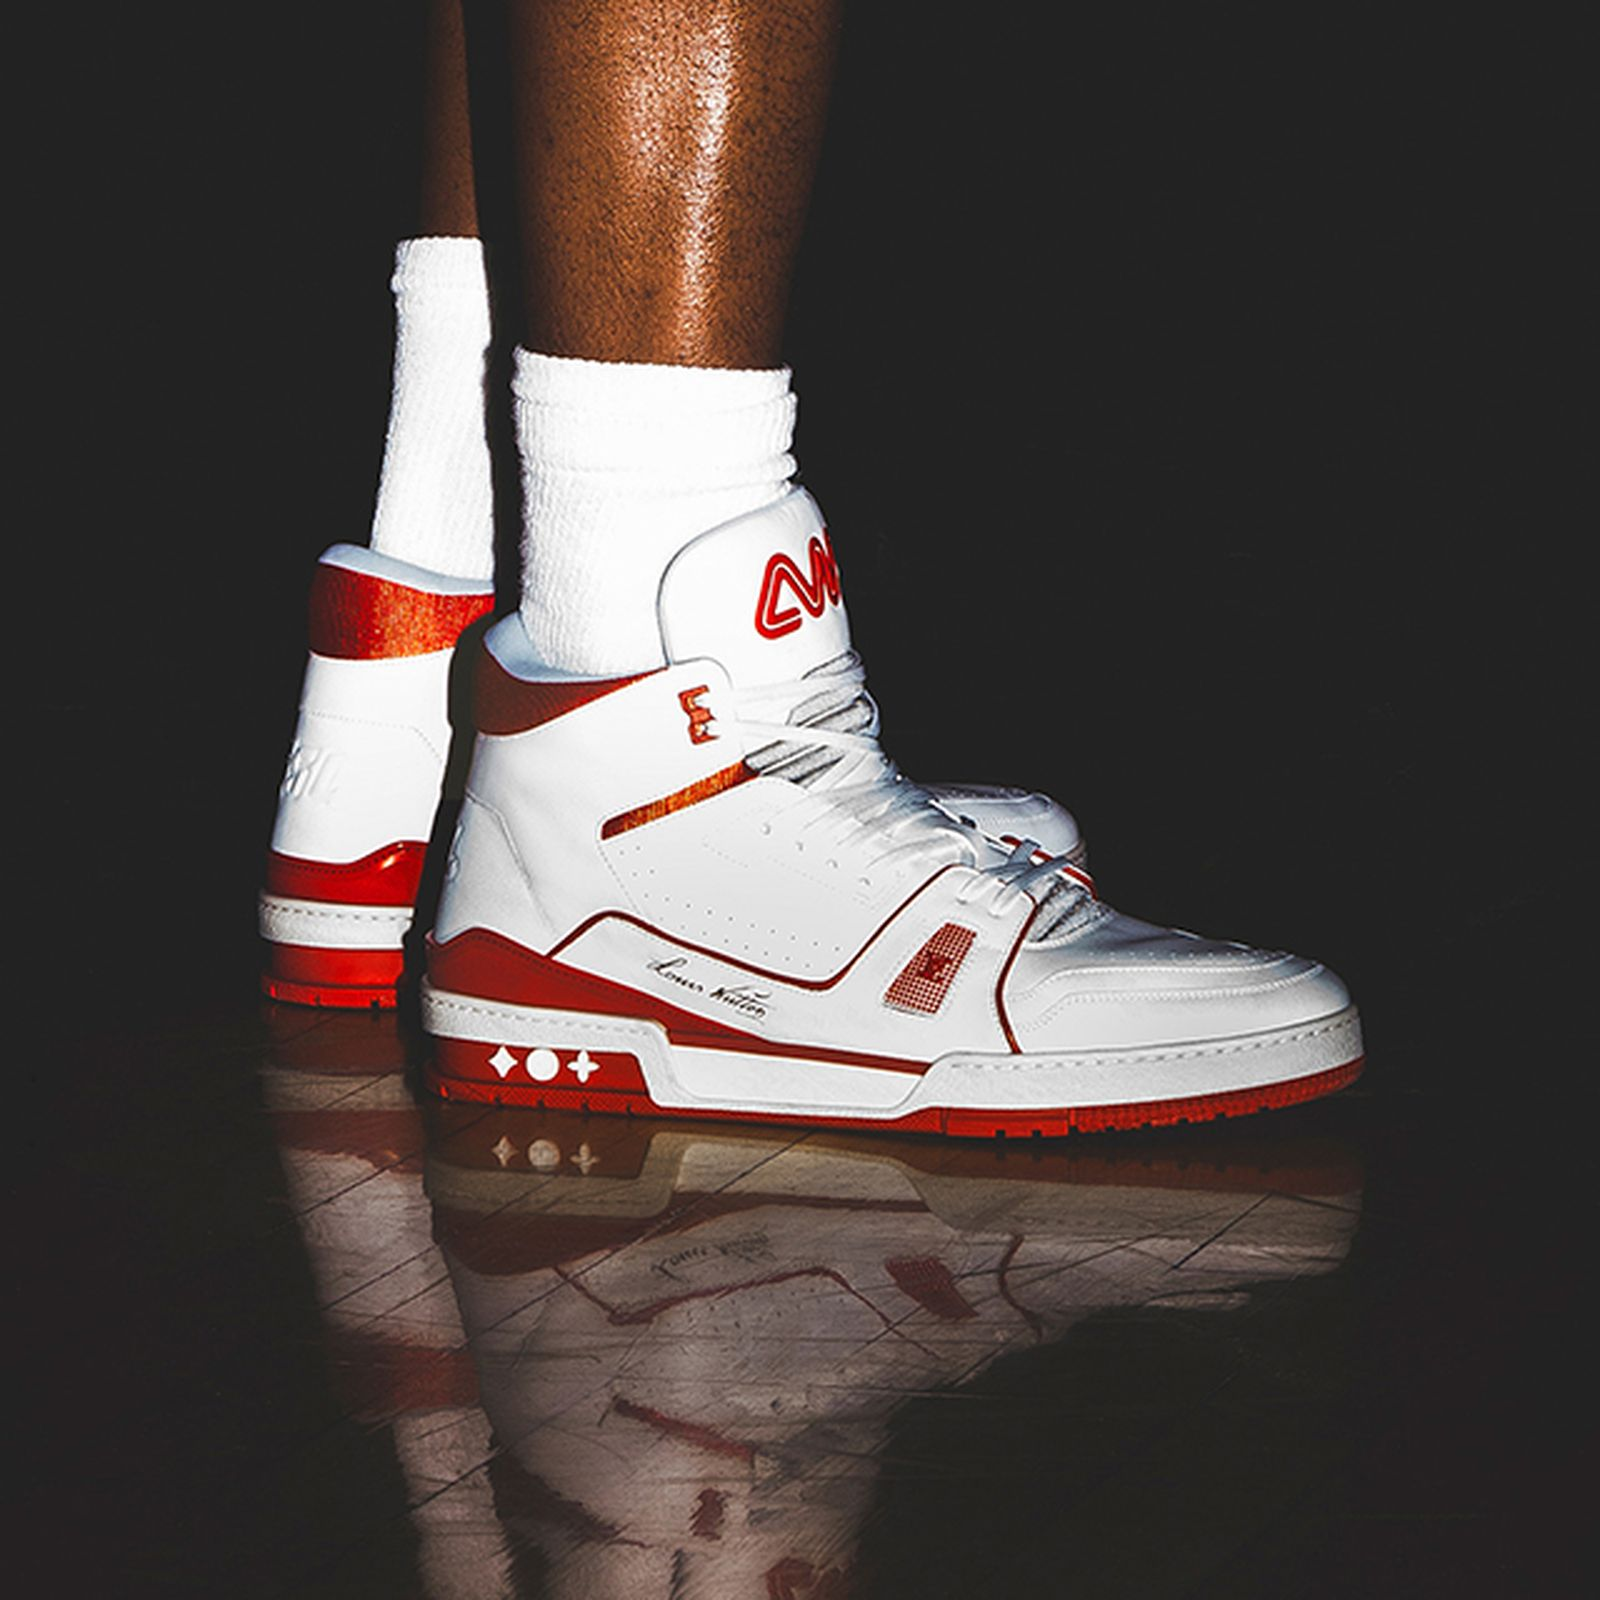 louis vuitton lv 408 trainer release date price virgil abloh